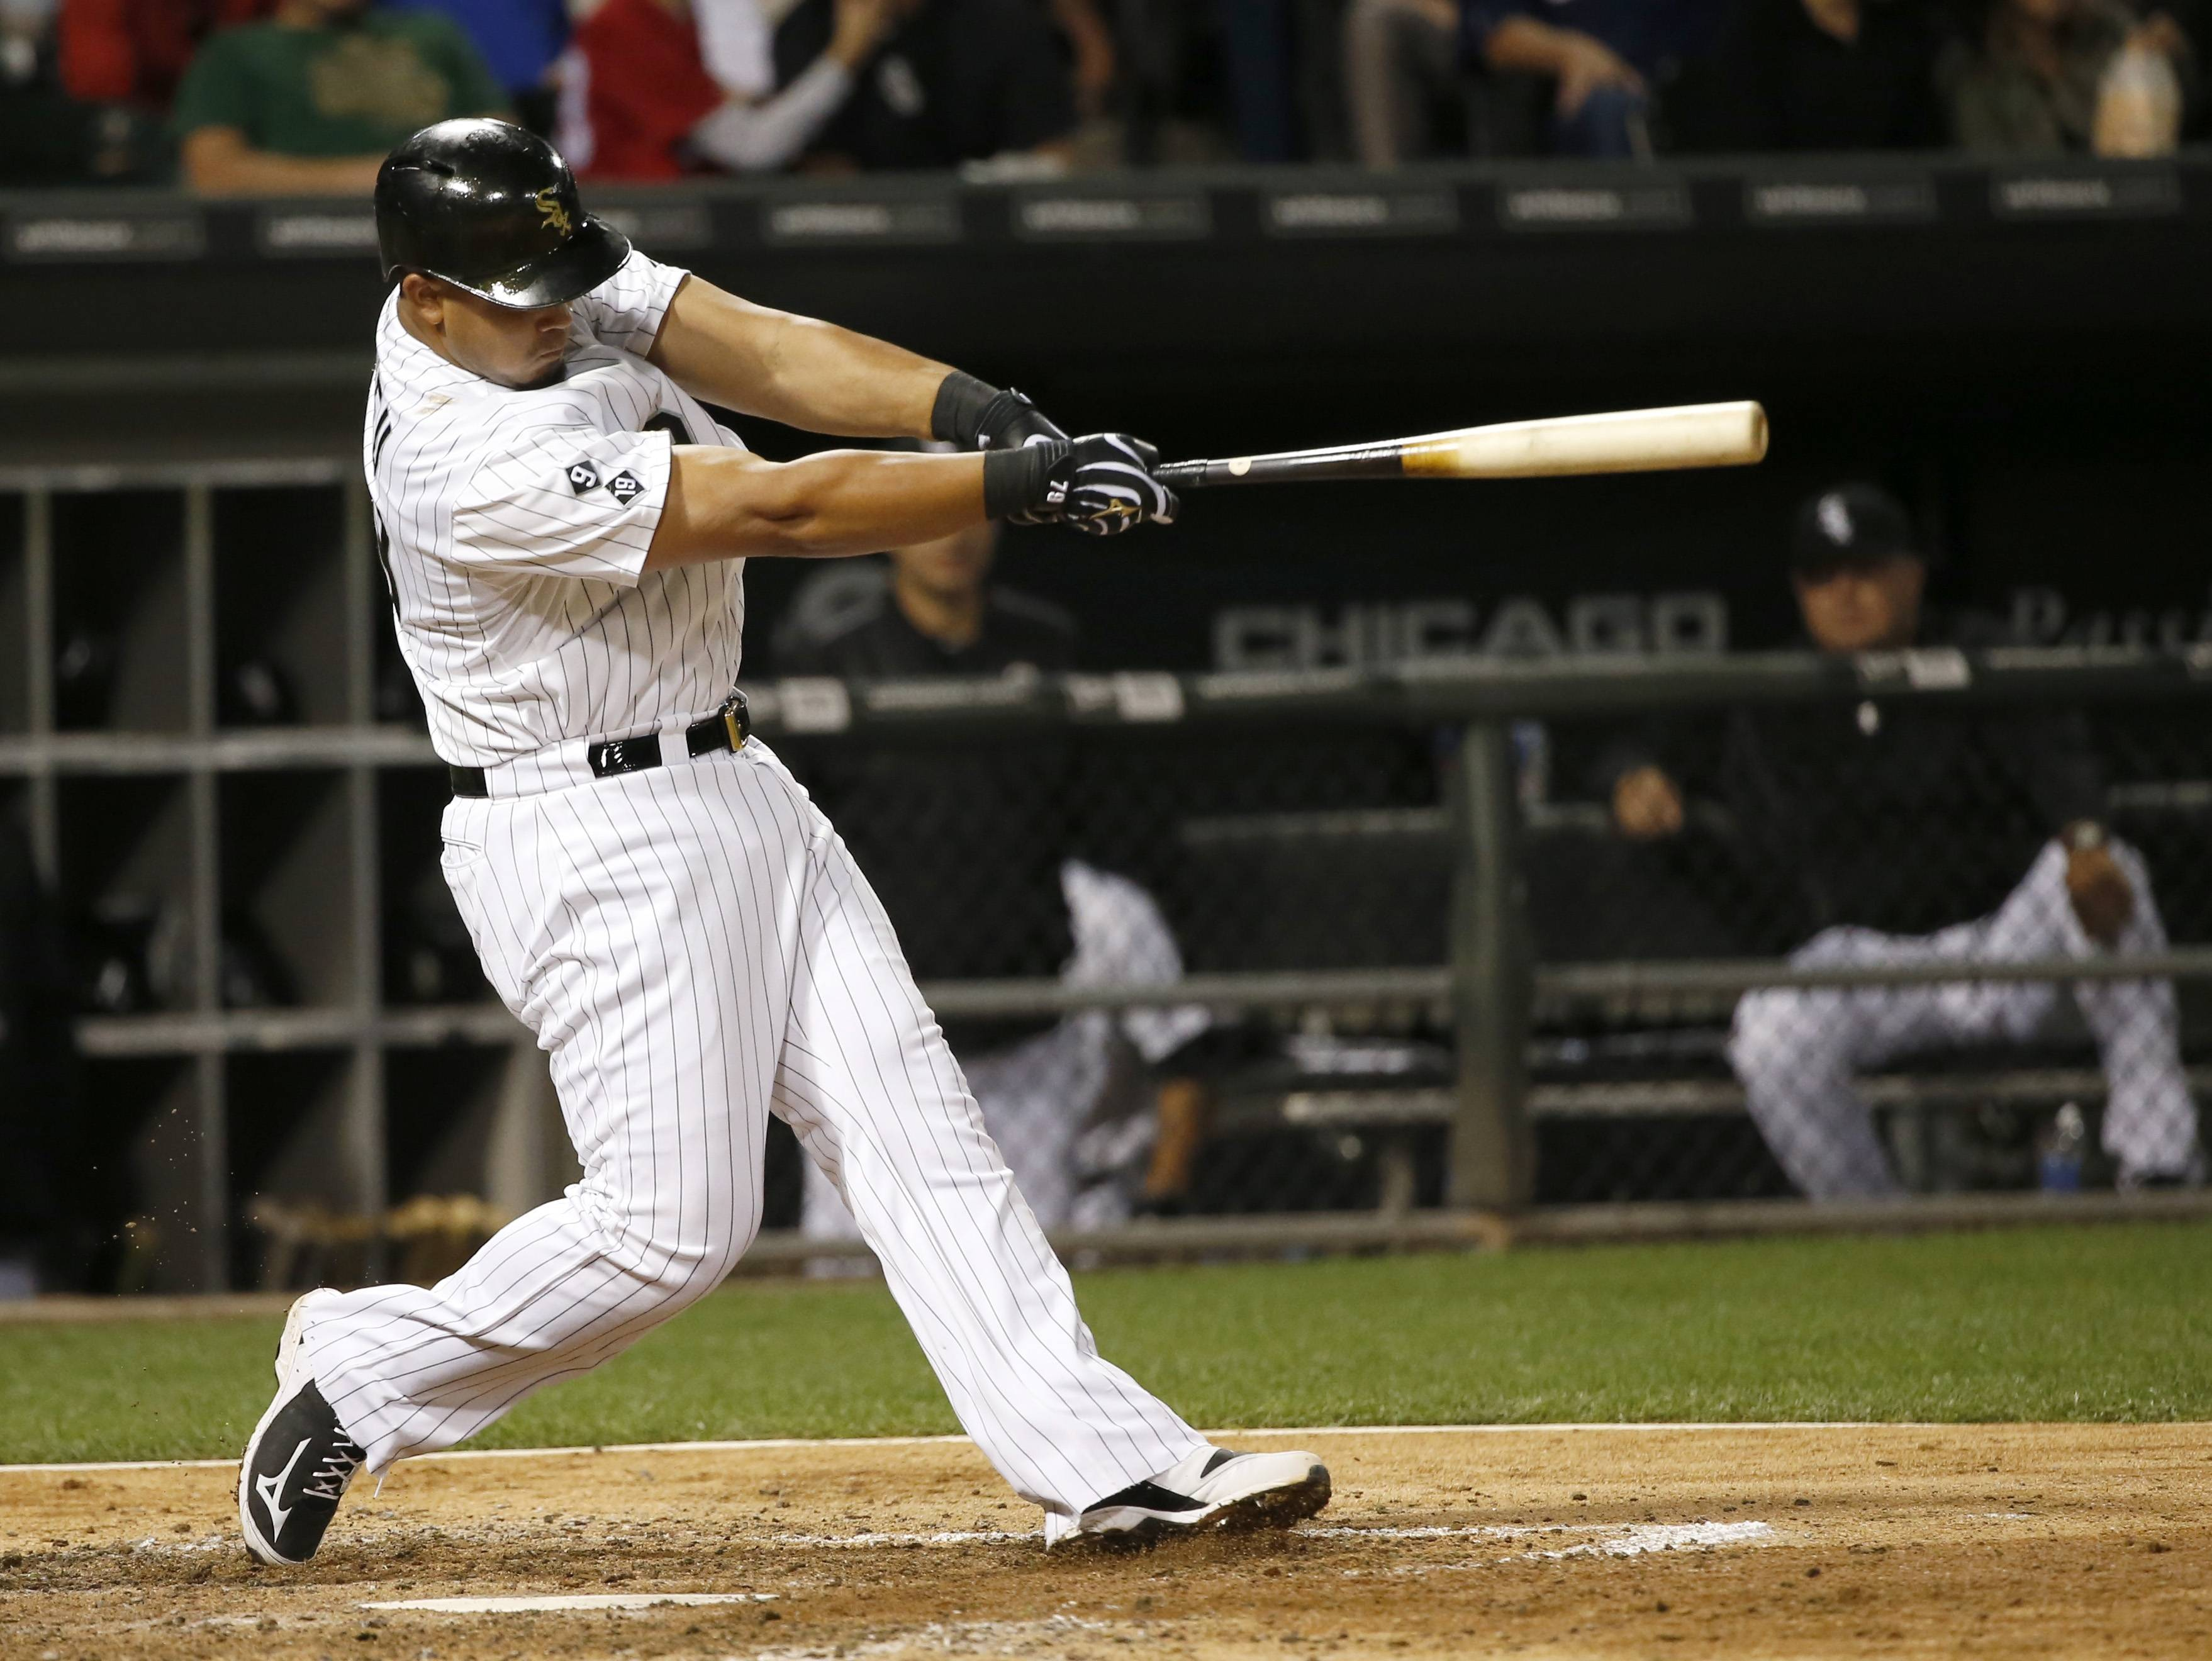 The Chicago White Sox avoided salary aribitration with Jose Abreu, Carlos Rodon, Luis Avilan and Leury Garcia on Friday. The Sox were unable to come to terms with Avisail Garcia and Yolmer Sanchez. Last year, Abreu batted .304 with 43 doubles, 33 home runs and 102 RBI. He led the American League with 343 total bases and became the third player in major-league history to begin his career with four or more consecutive seasons of 25-plus homers and 100-plus RBI, joining Hall of Famer Joe DiMaggio (1936-41) and Albert Pujols (2001-10).